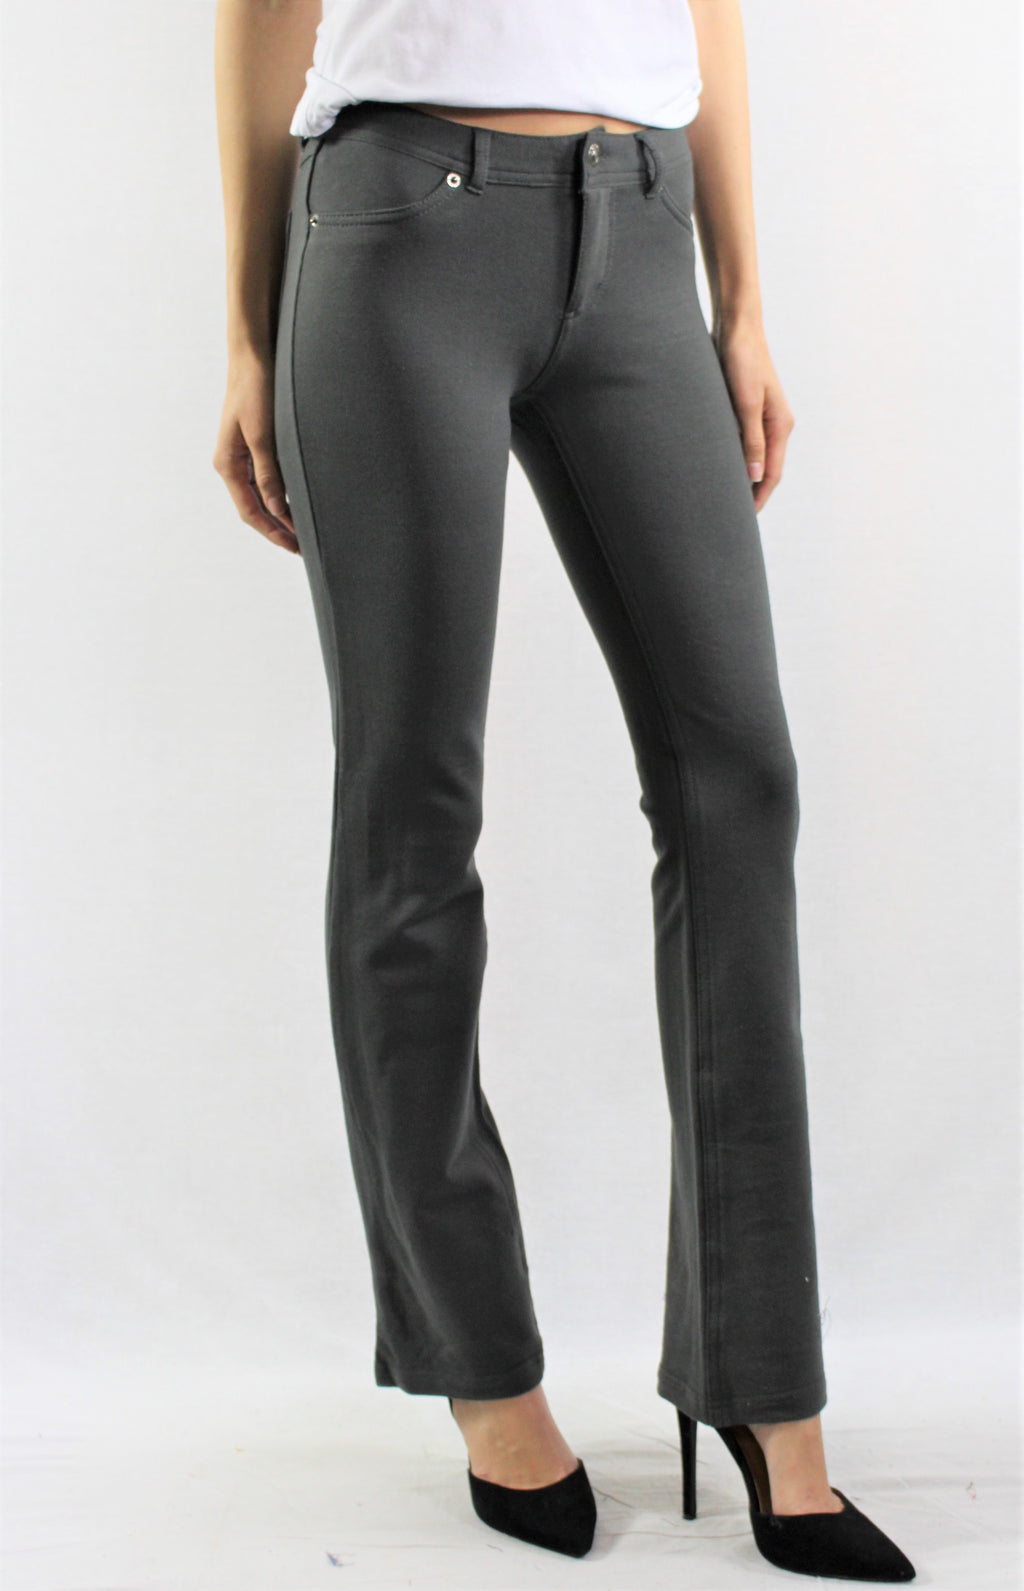 Dark Olive Stretch Trousers for Women